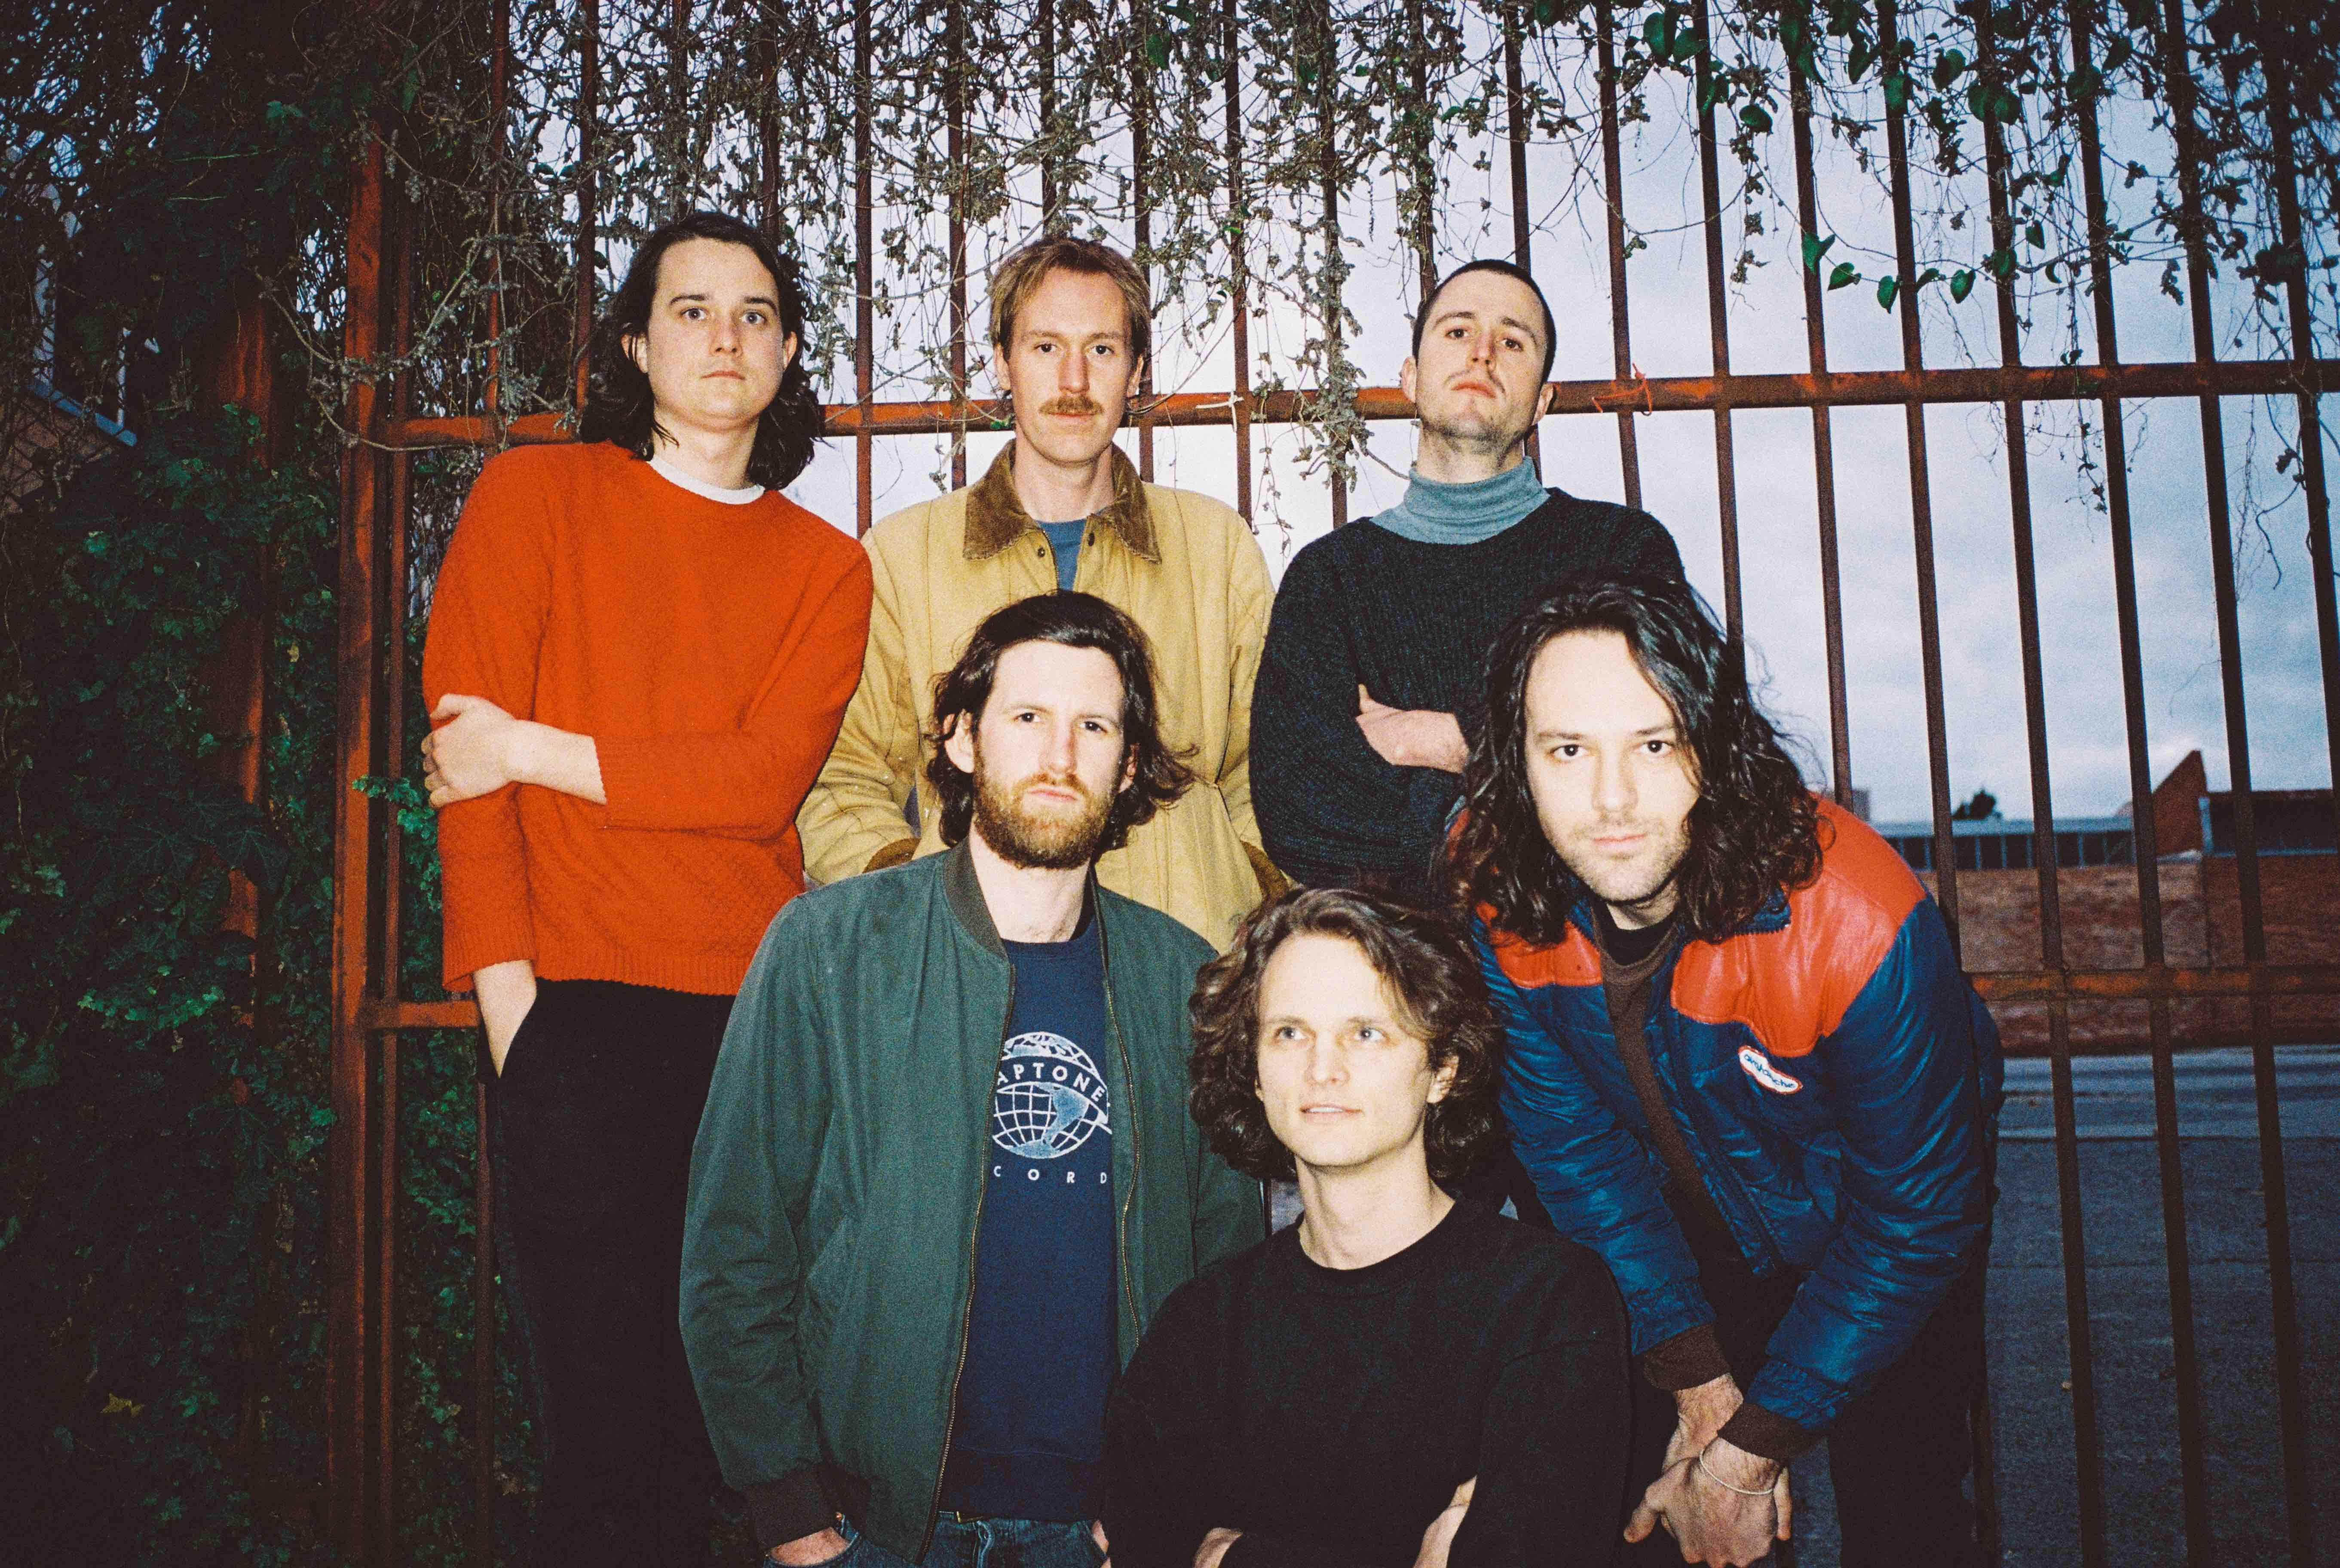 More Microtonal Madness from King Gizzard & the Lizard Wizard